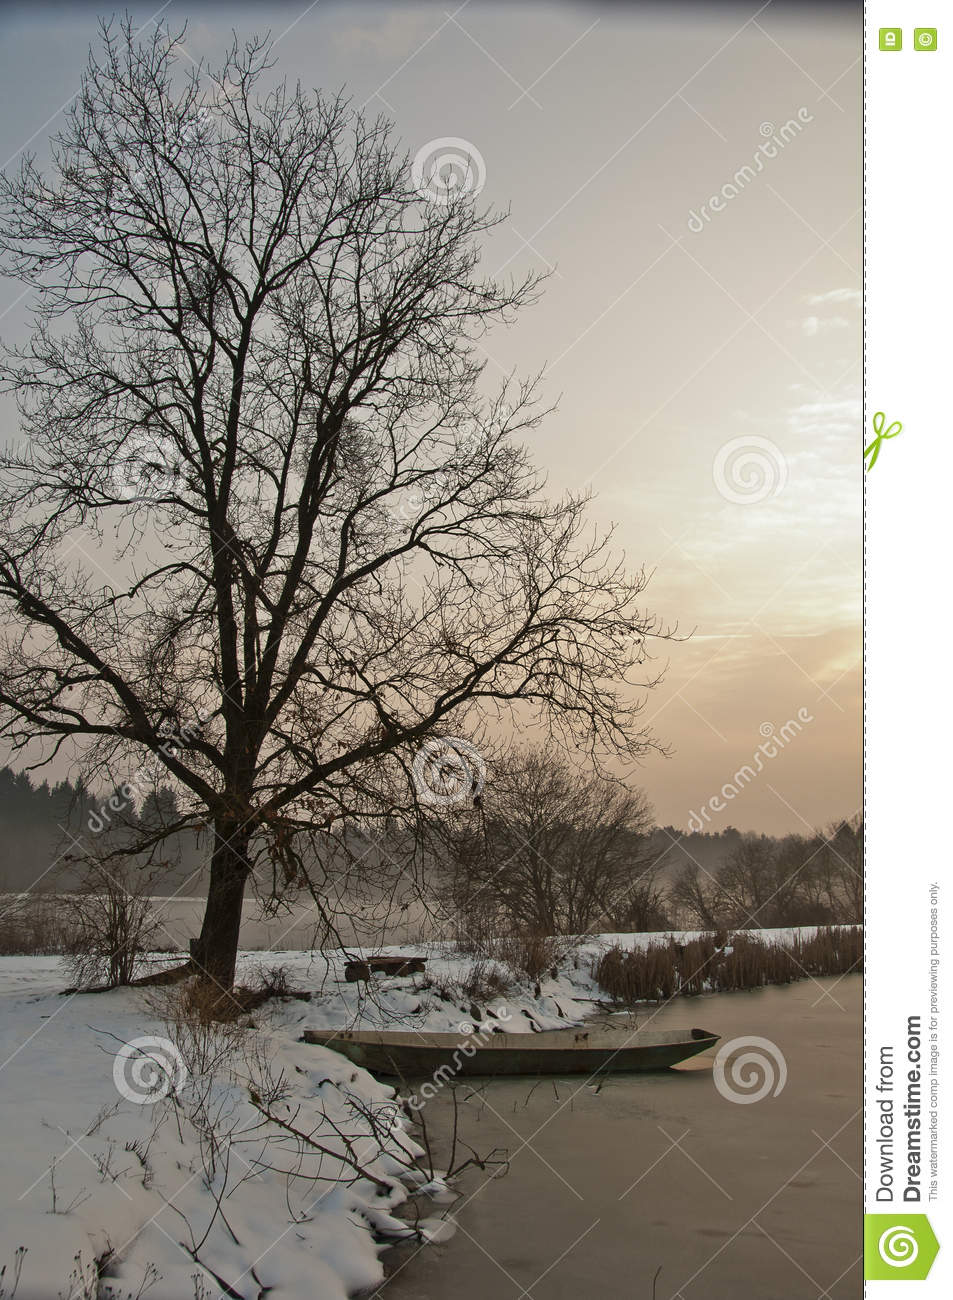 Boat beneath a tree on winter lake at sunset